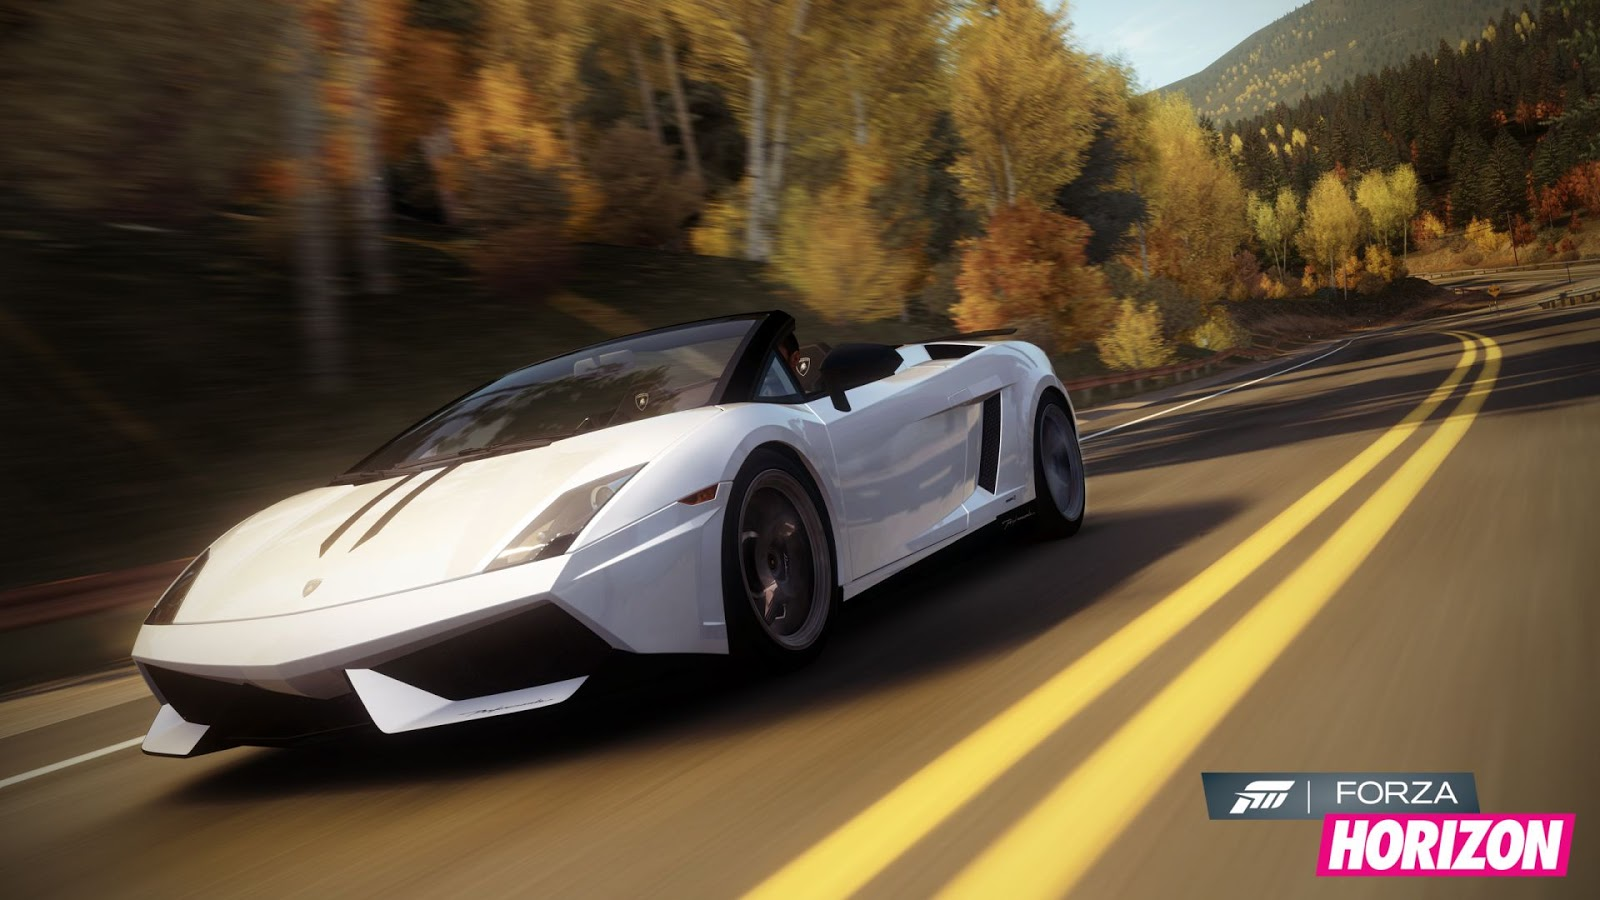 Forza Horizon HD & Widescreen Wallpaper 0.903310522574963